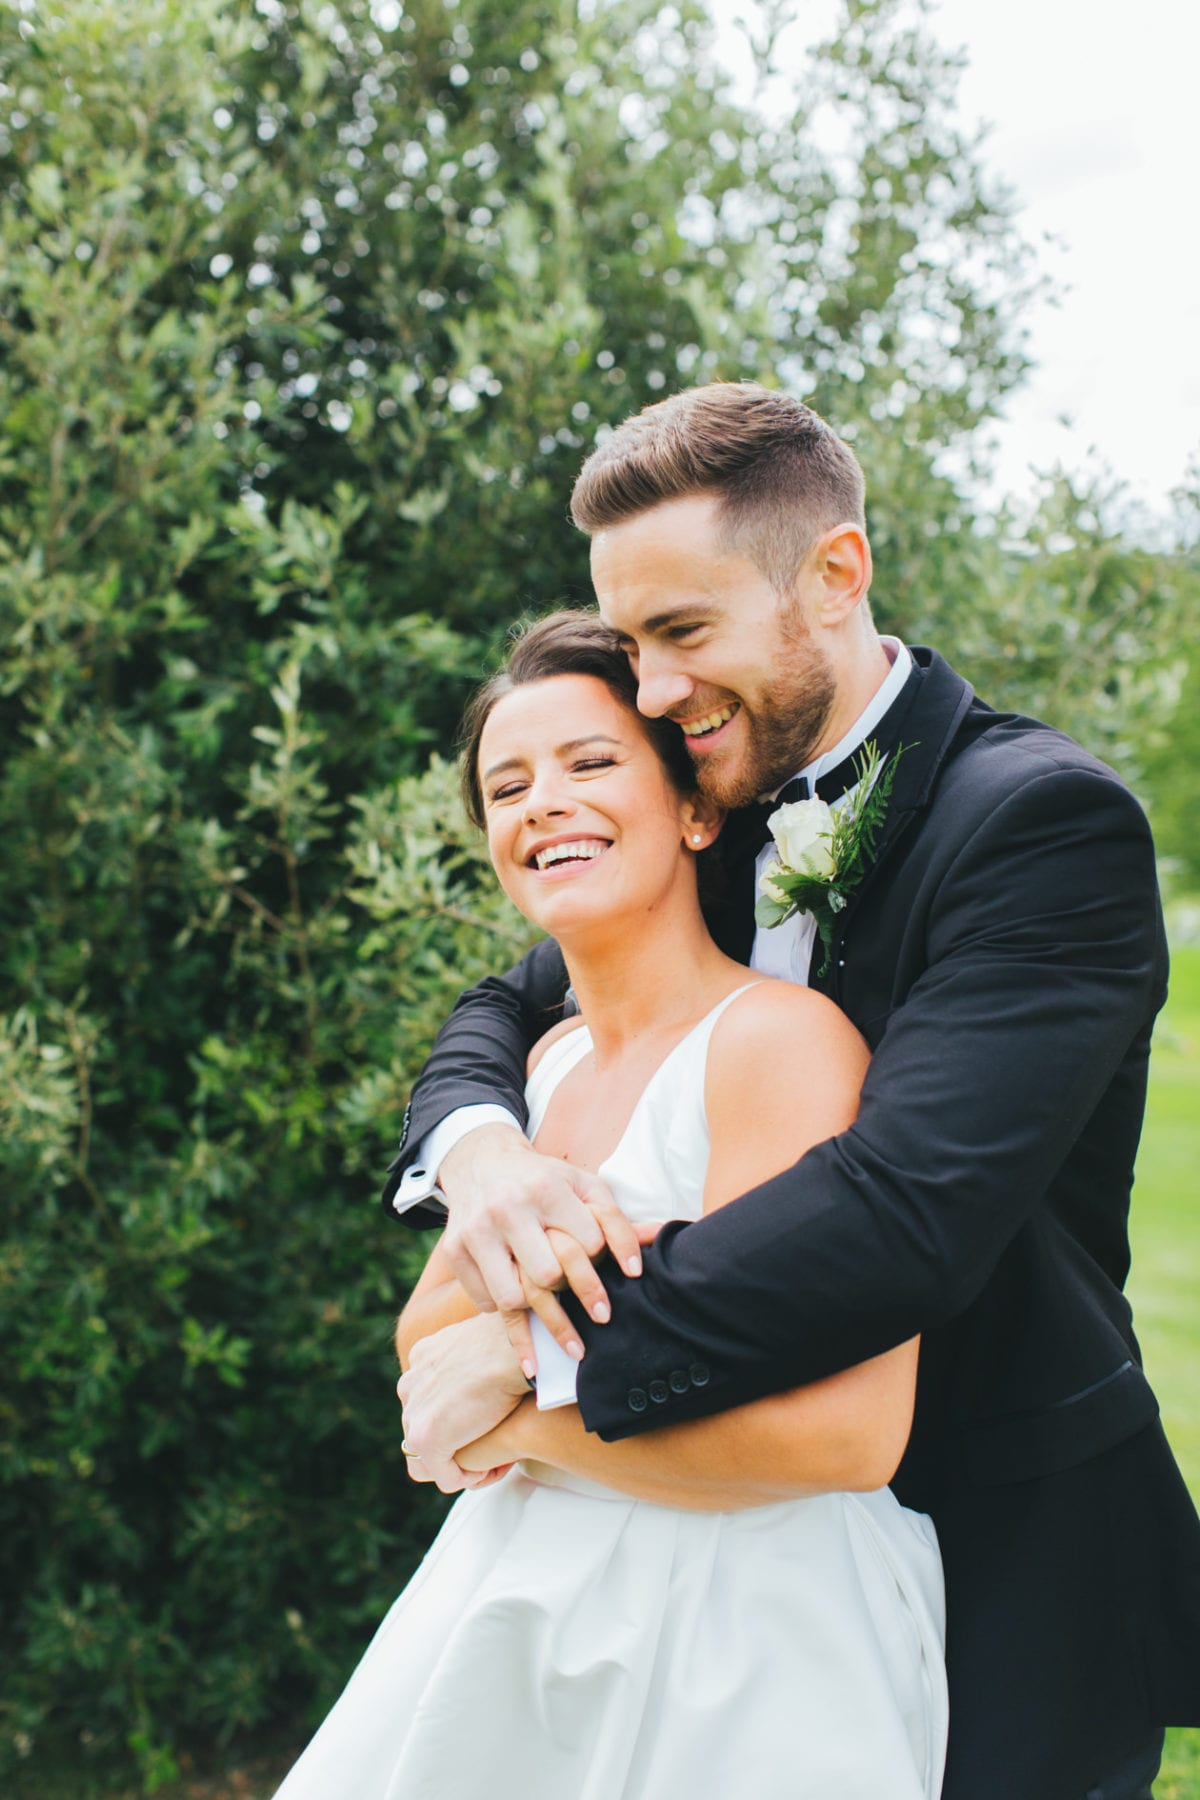 wedding photography poses - thoughts on self love